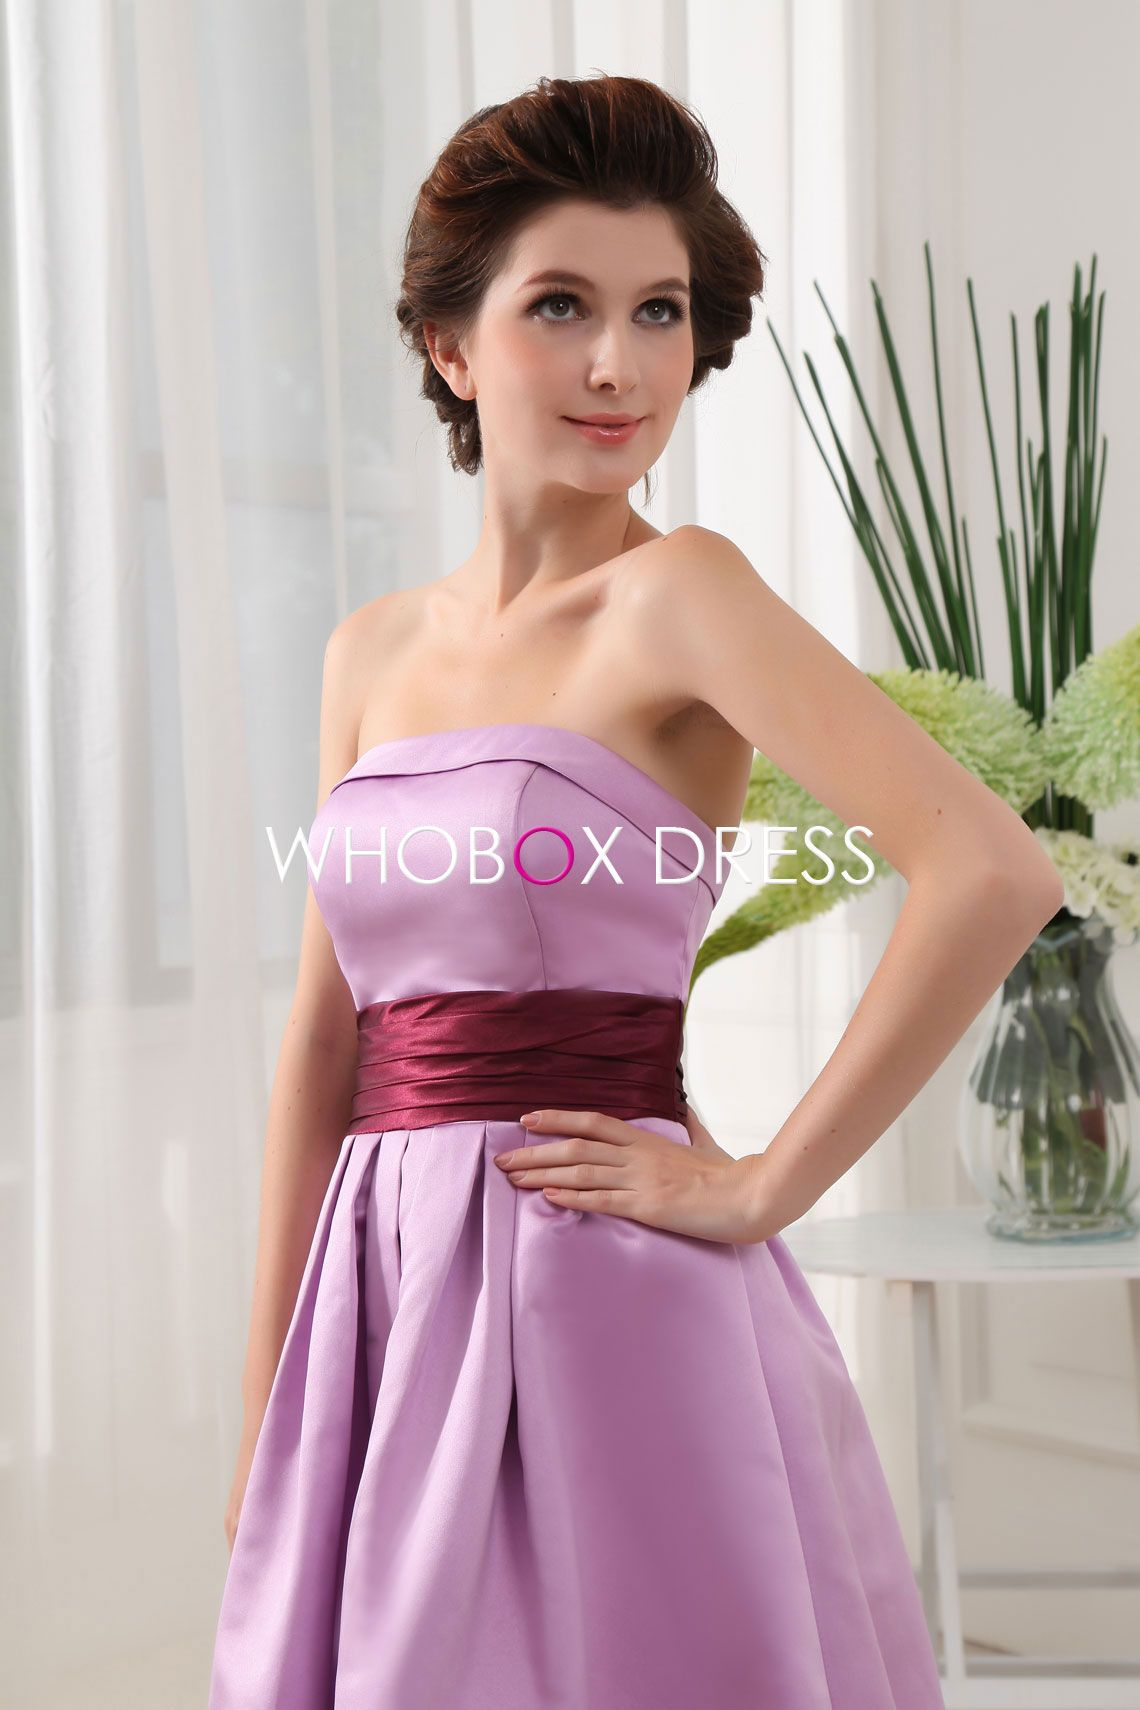 Bridesmaid dresses bridesmaid dresses my little white church bridesmaid dresses bridesmaid dresses ombrellifo Image collections